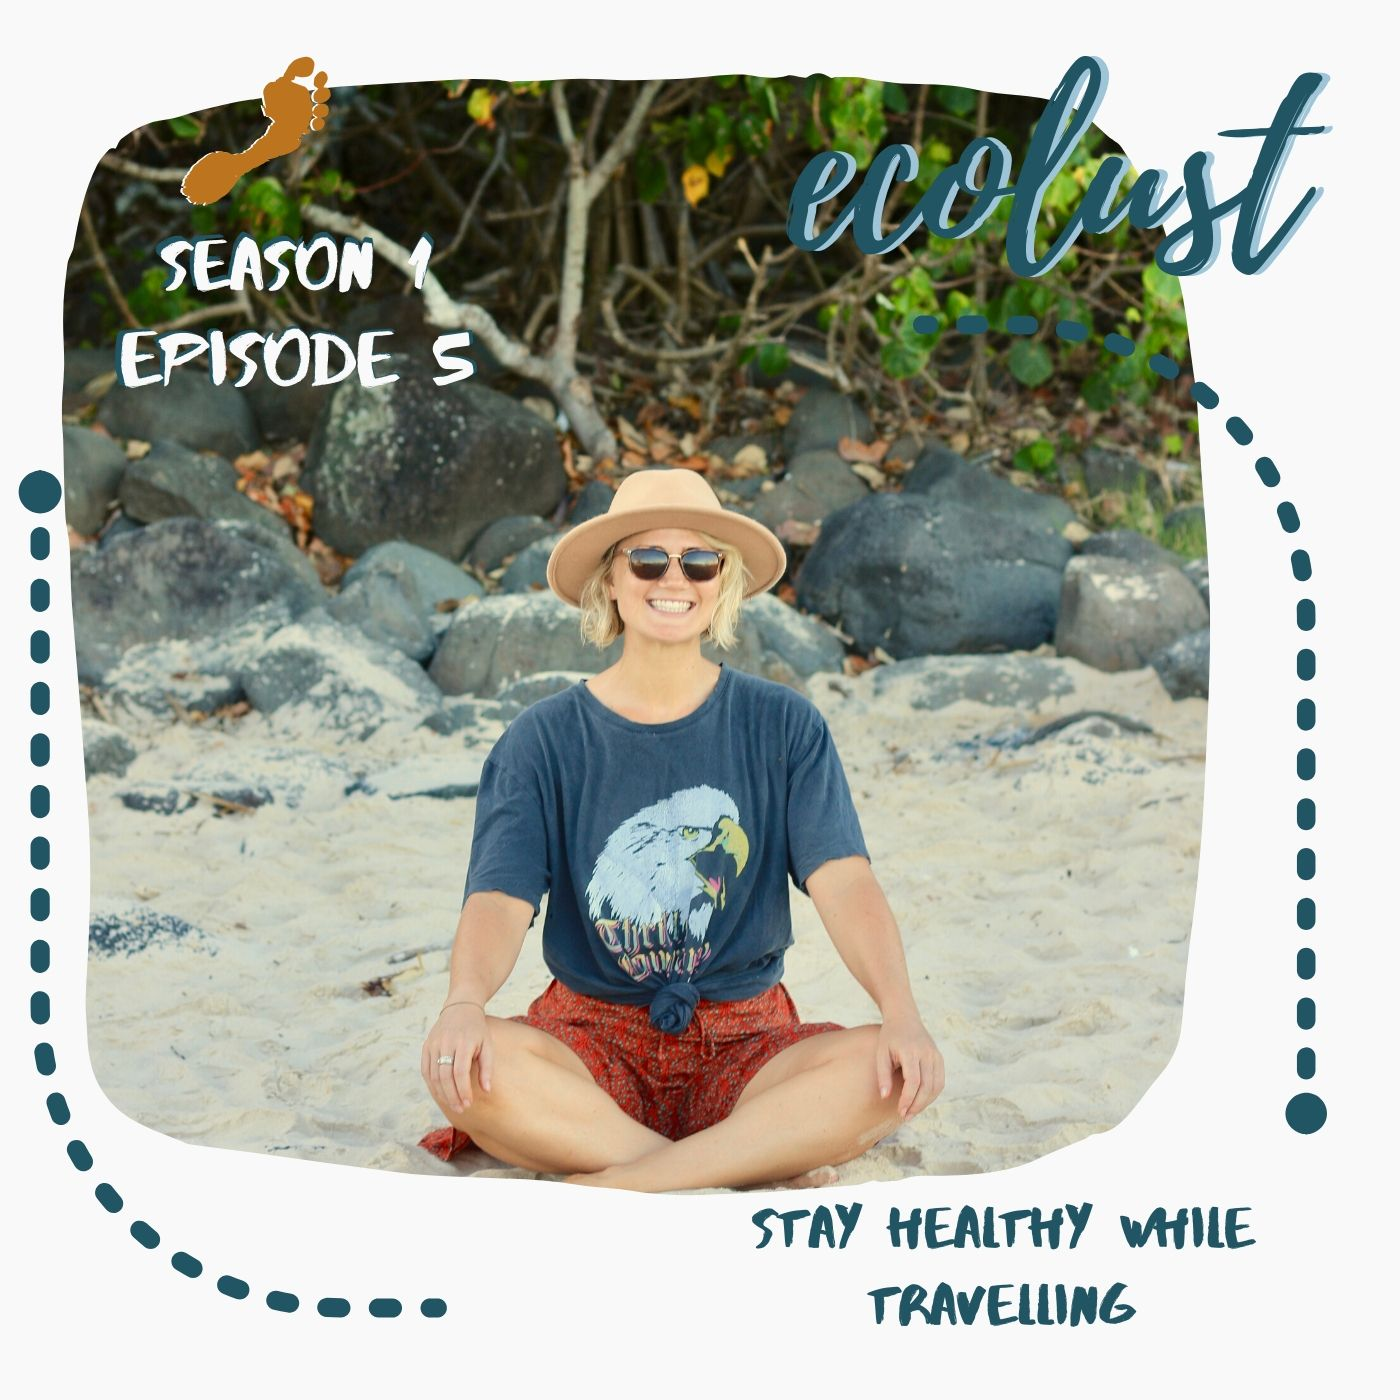 EcoLust S1E5: Stay Healthy While Travelling